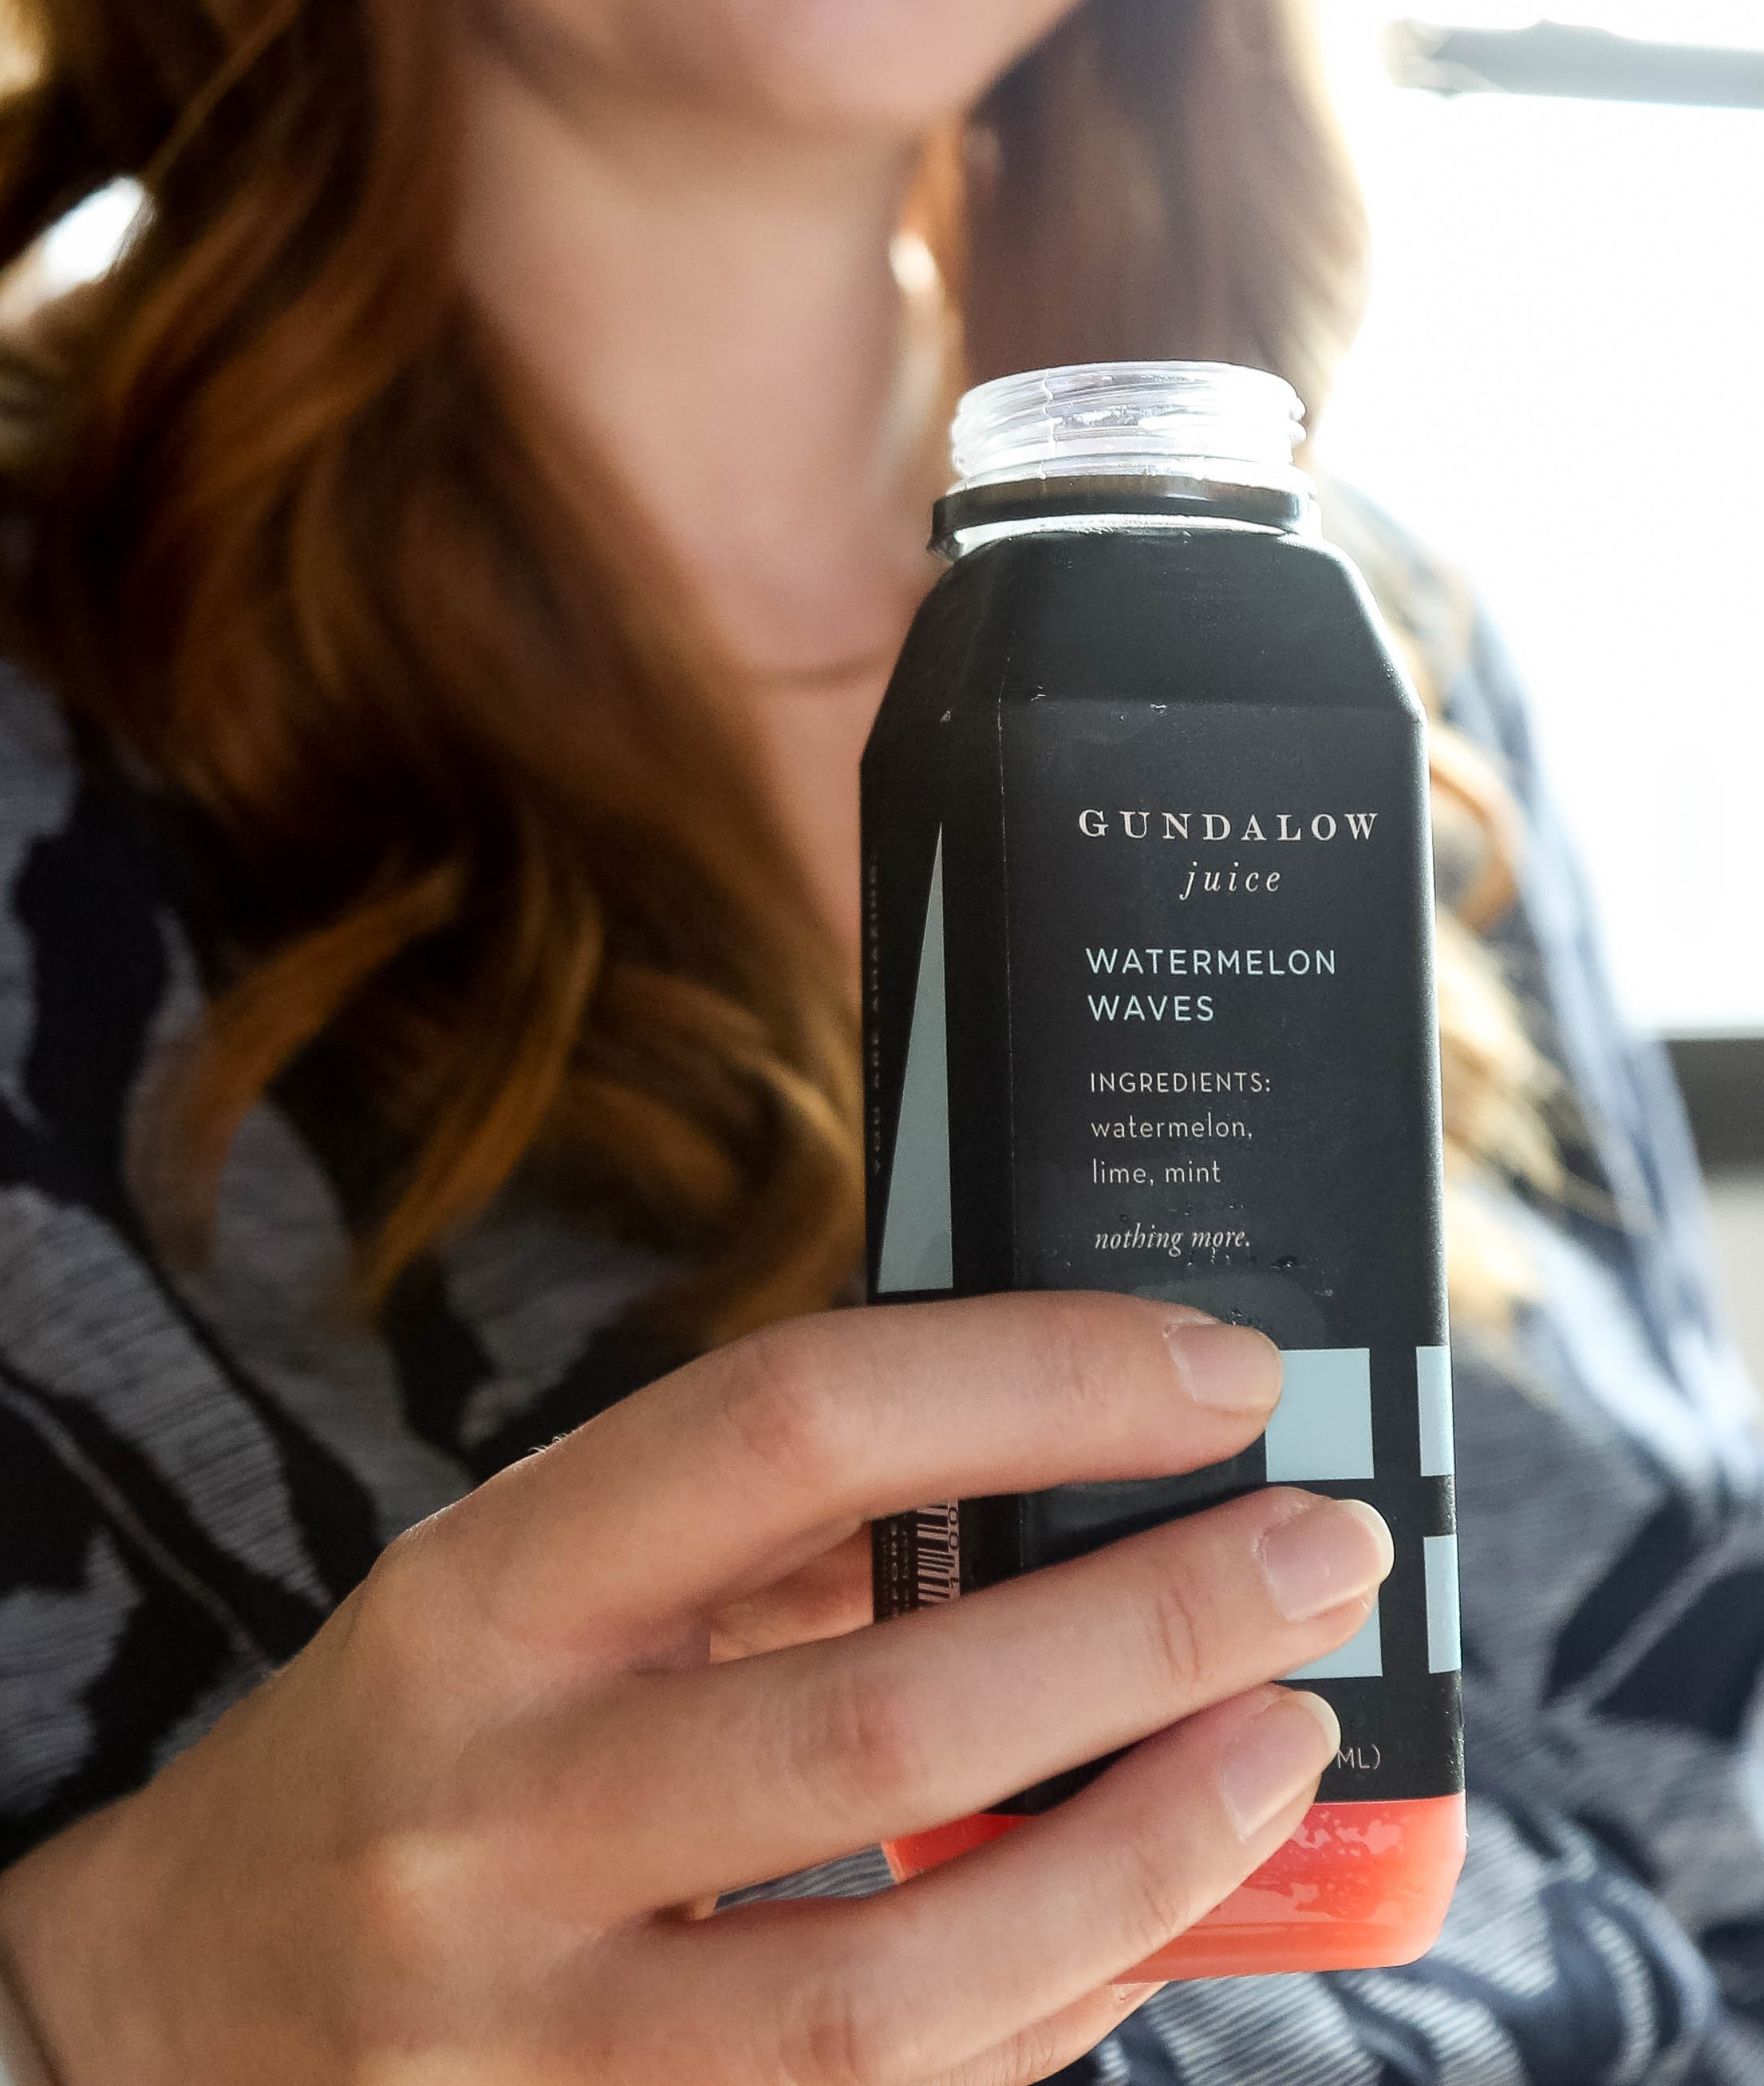 Gundalow  fresh-pressed juice delivered to your door is nutritionist approved for pregnant women & kid-friendly too